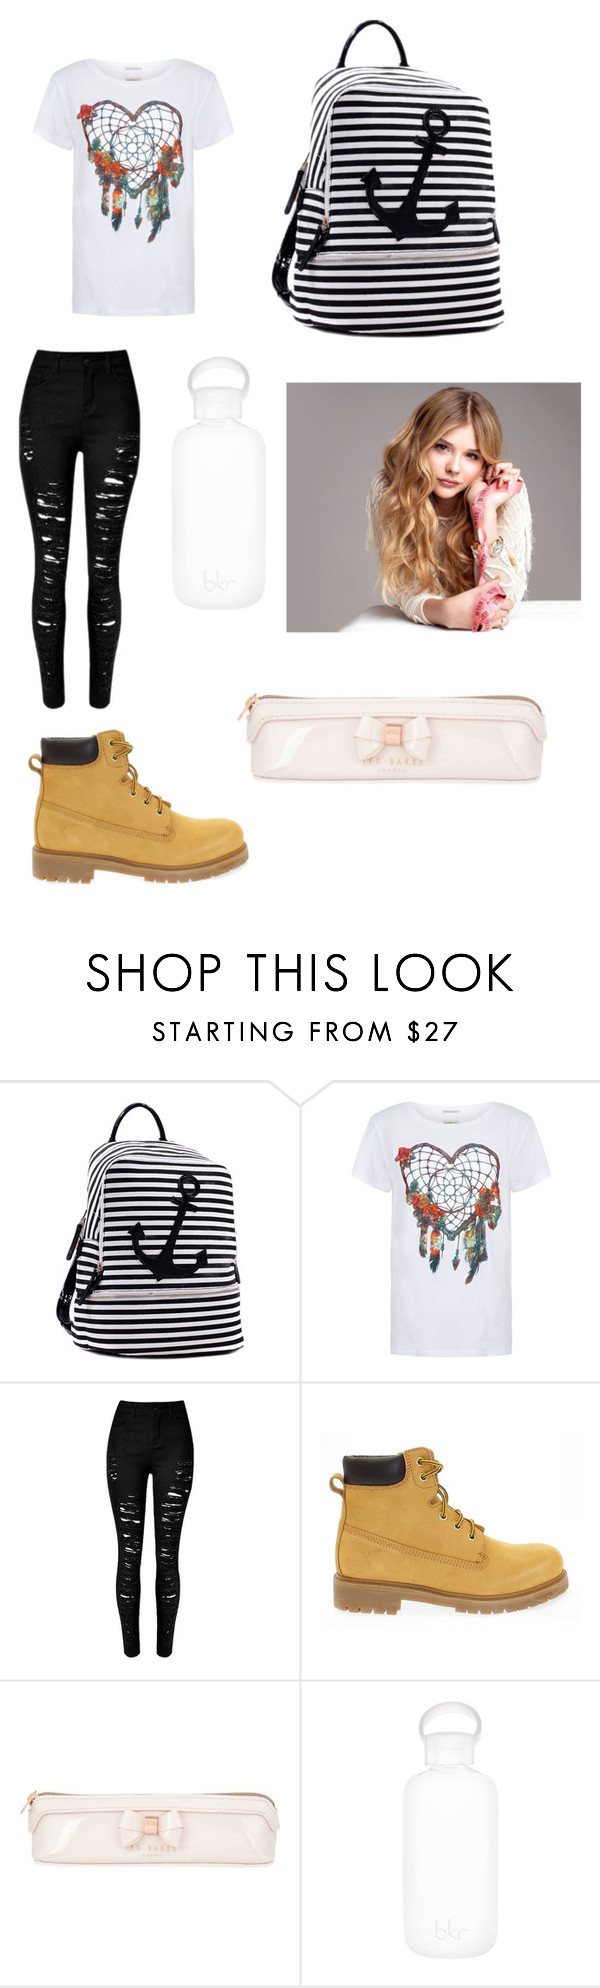 """""""Untitled #367"""" by princessvreni ❤ liked on Polyvore featuring Dasein, Denim & Supply by Ralph Lauren, Docksteps, Ted Baker and bkr"""